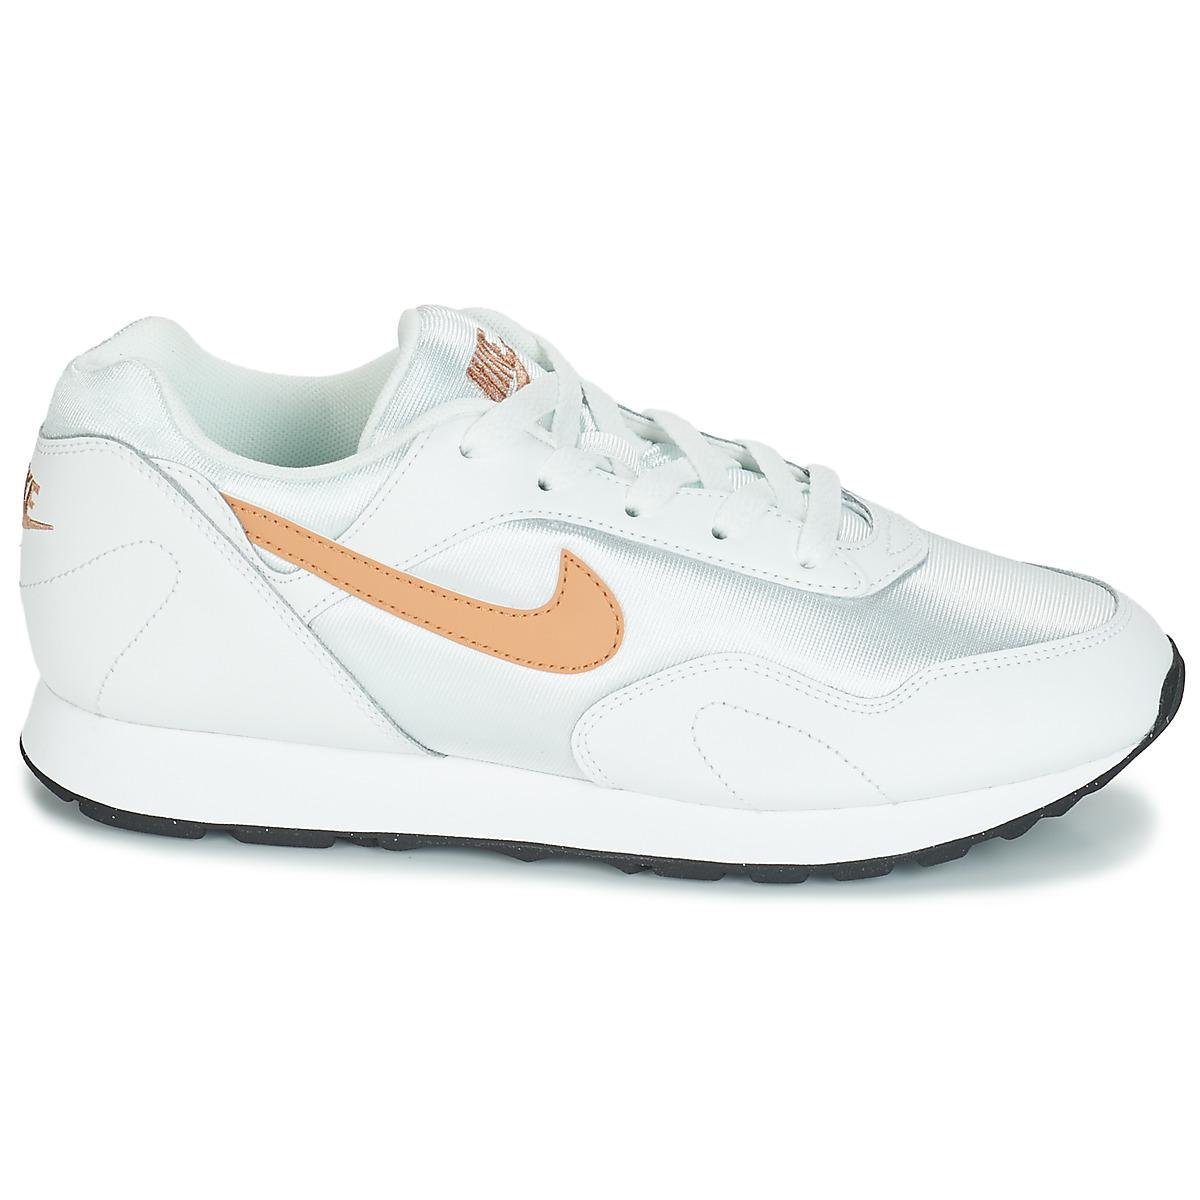 a2b5b2948c91d Nike - White Outburst Mixed Lace-up Sneakers - Lyst. View fullscreen